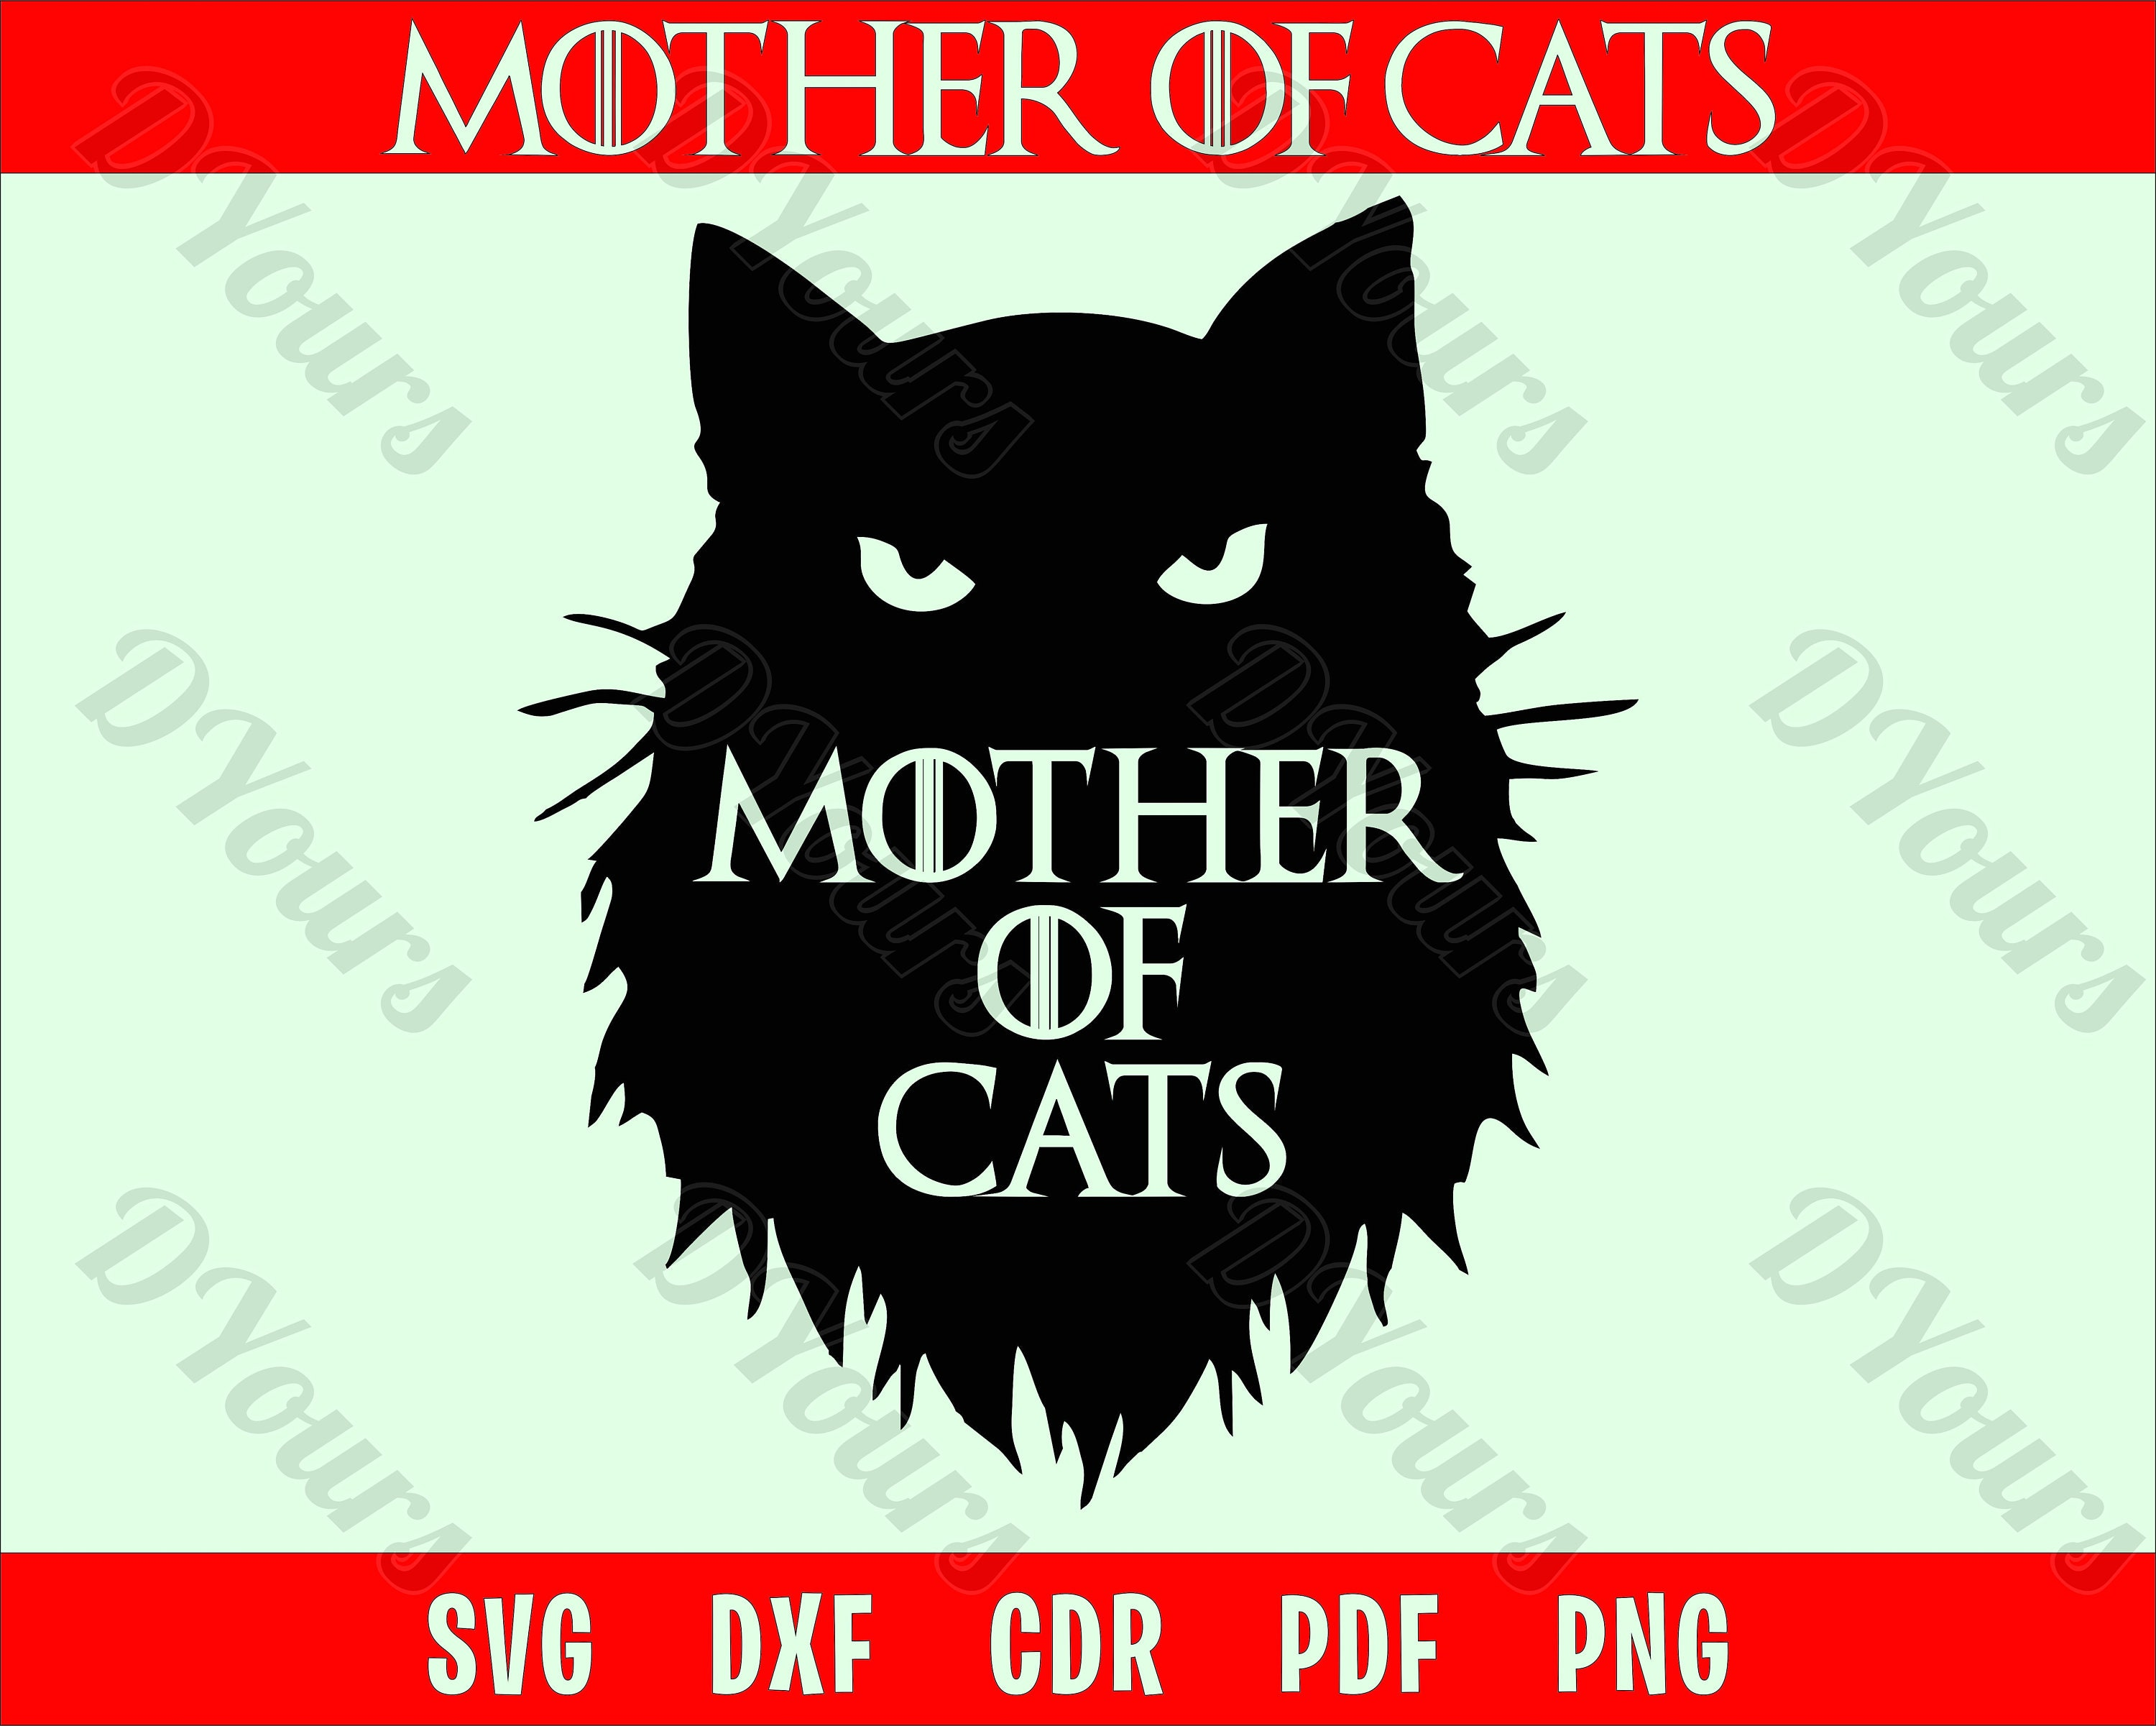 Mother of Cats SVG Sticker Stencil Game of Thrones SVG Vector File - Laser  Files - Cut Files for Laser Cutting CNC Laser Engraving Clipart